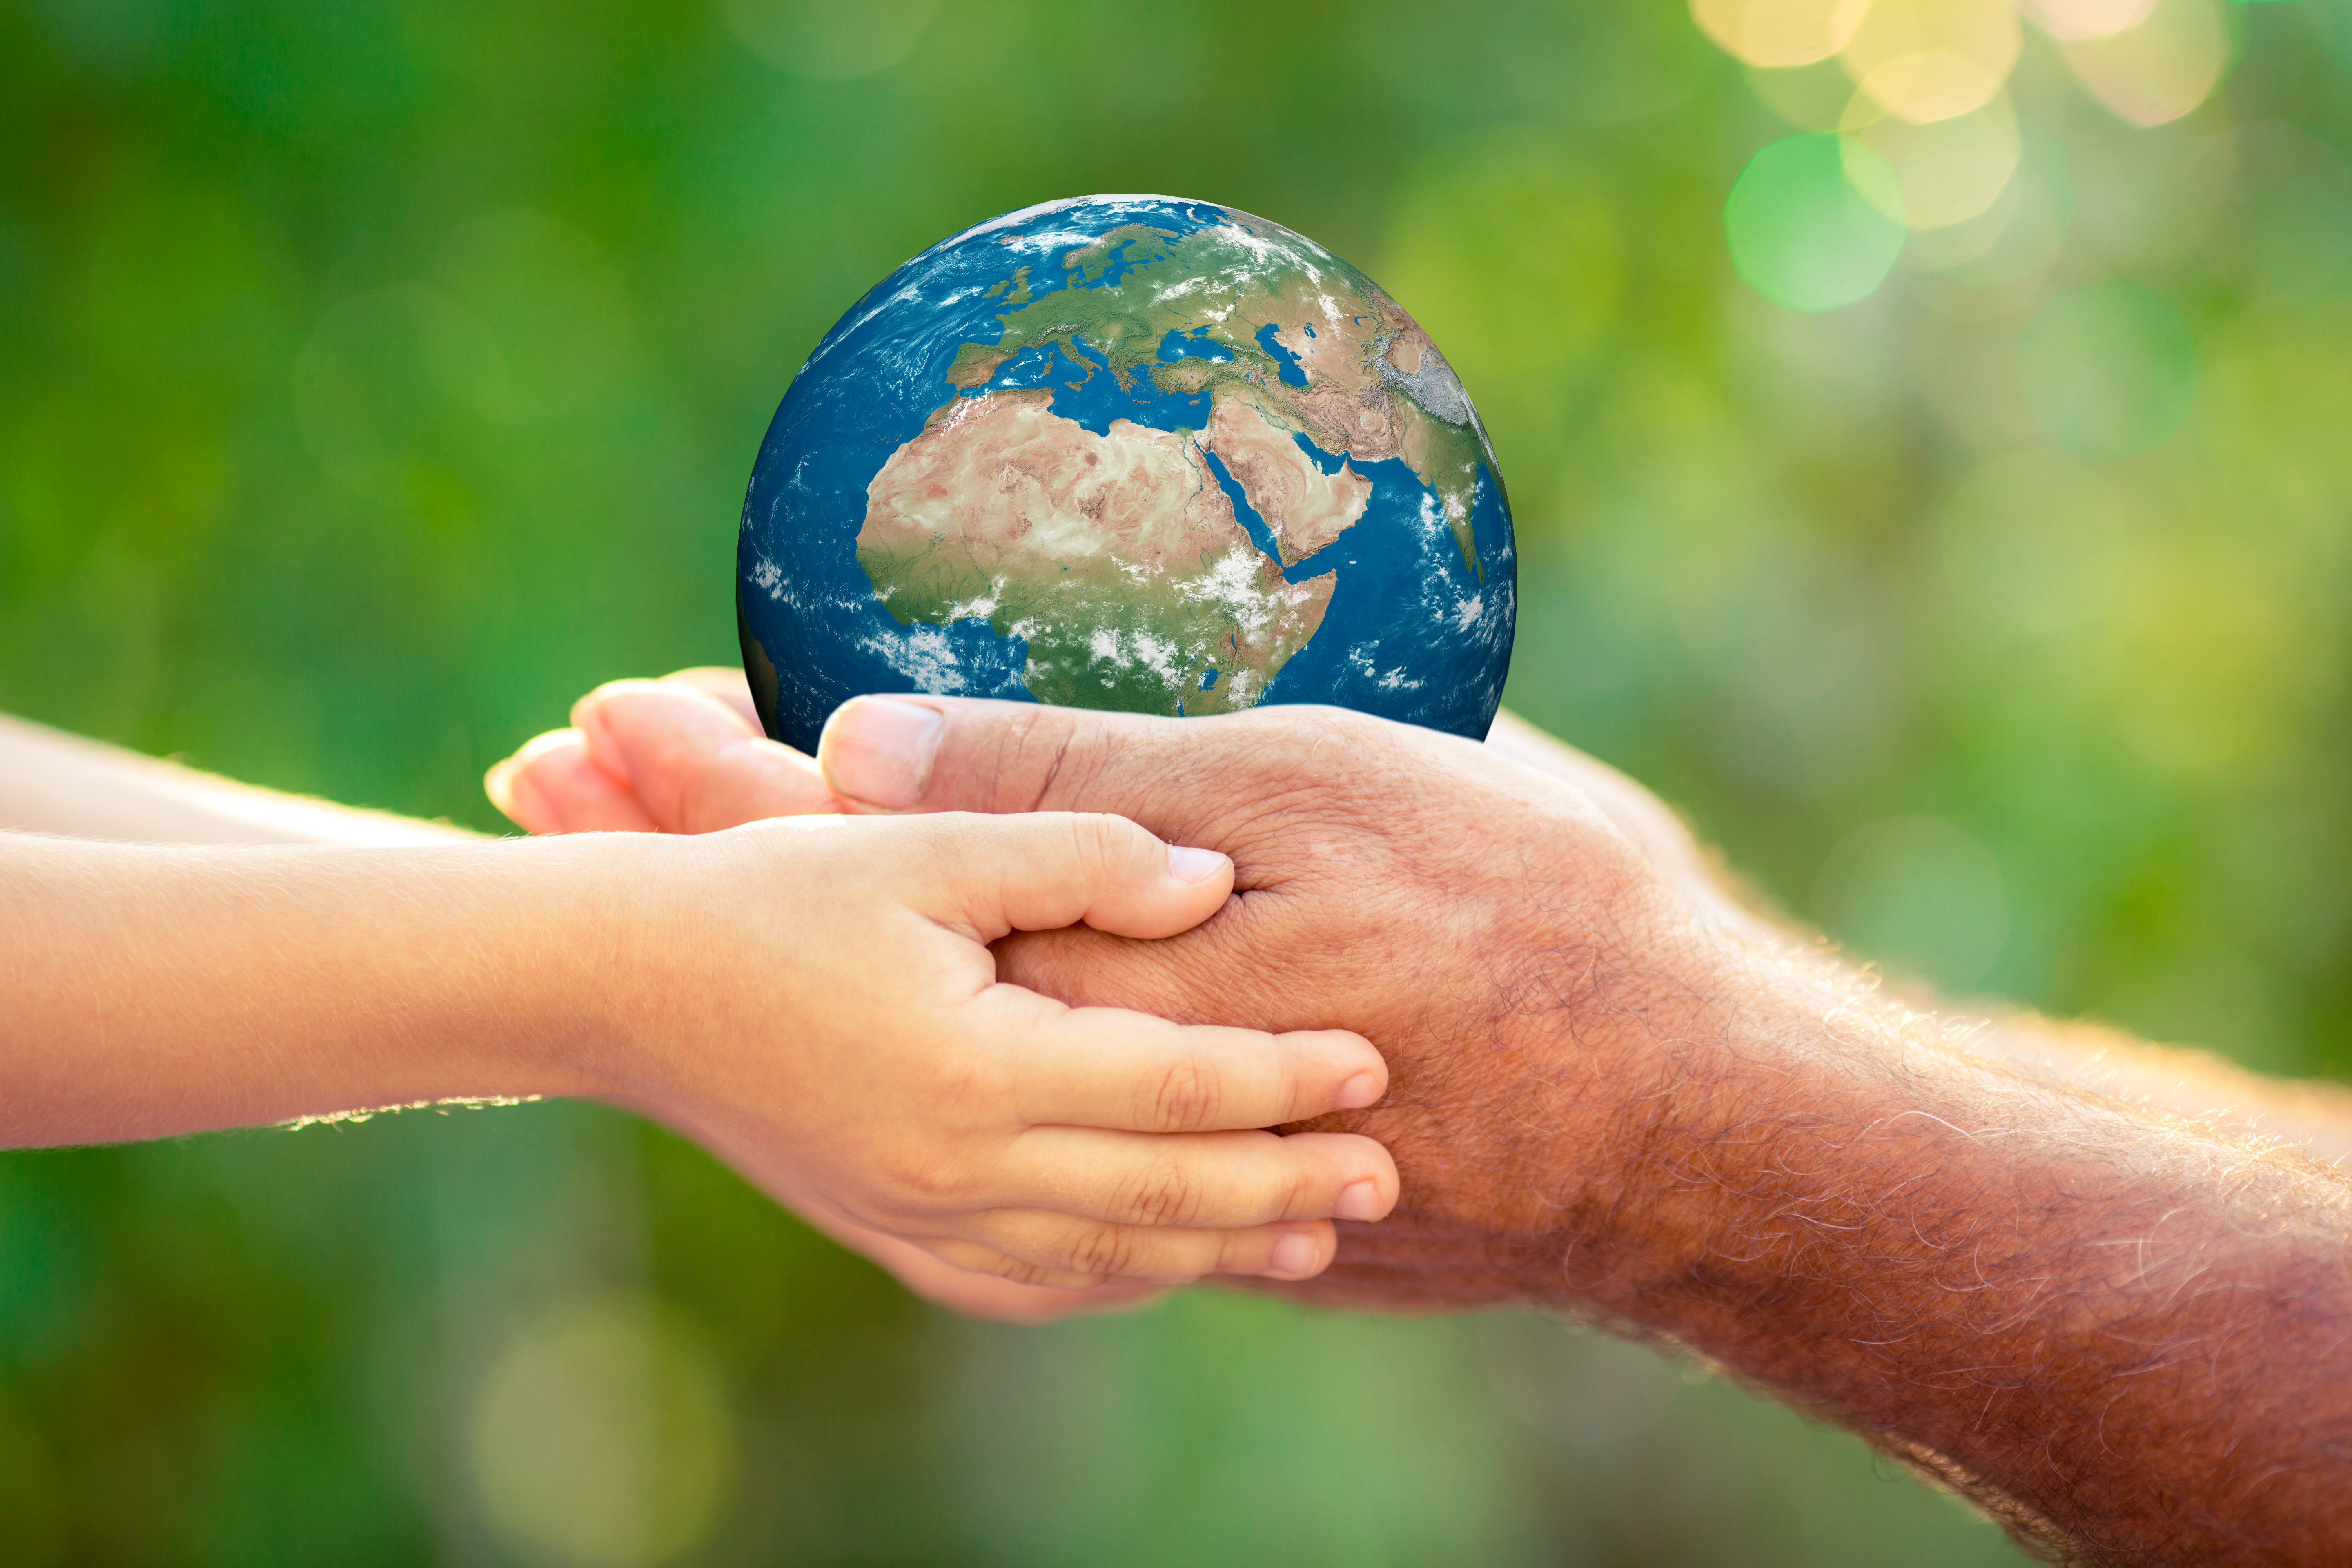 We need to hold our world carefully, together